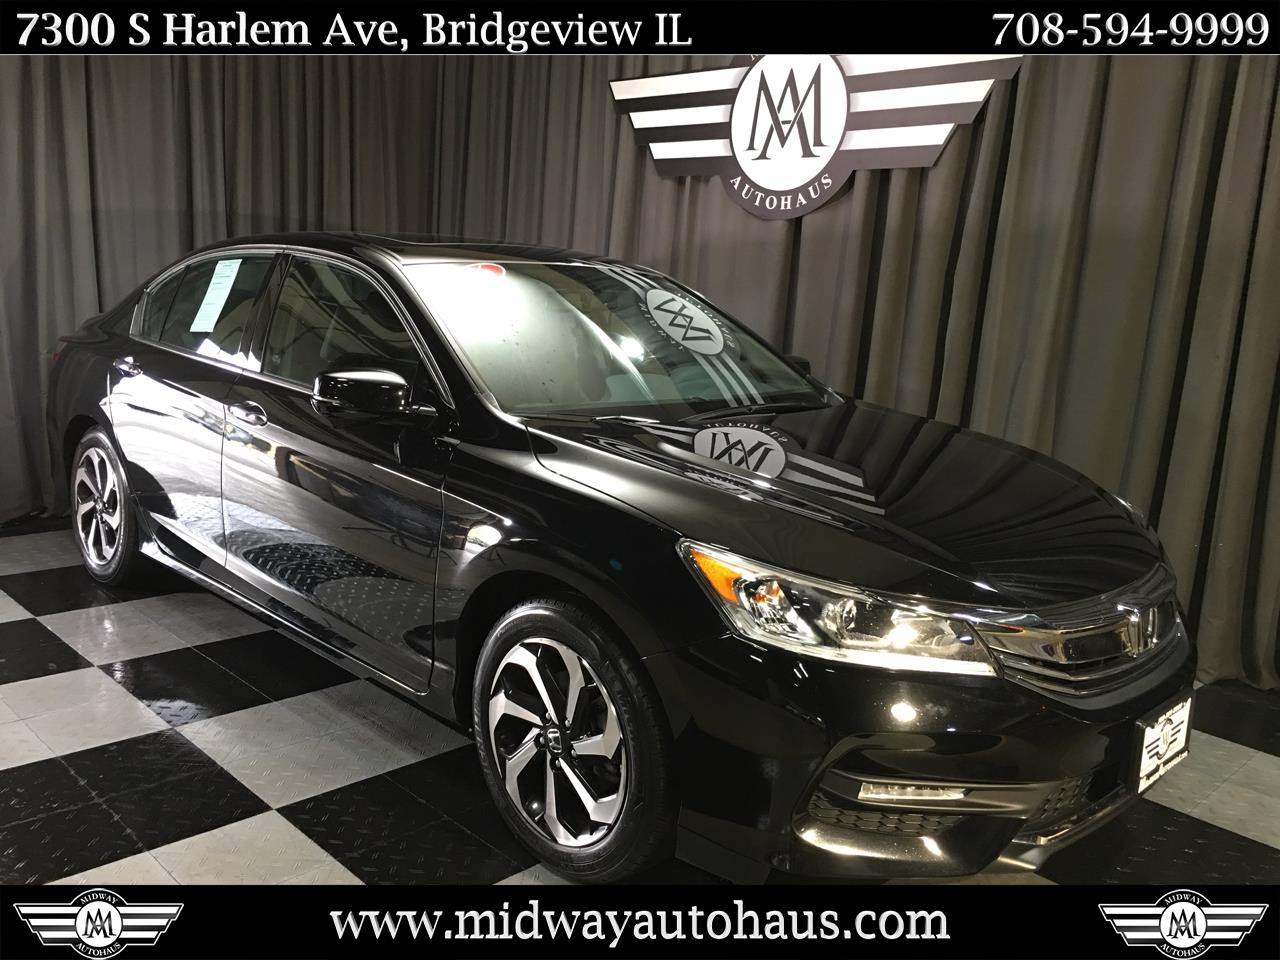 Pre-Owned 2016 Honda Accord 4dr V6 Auto EX-L